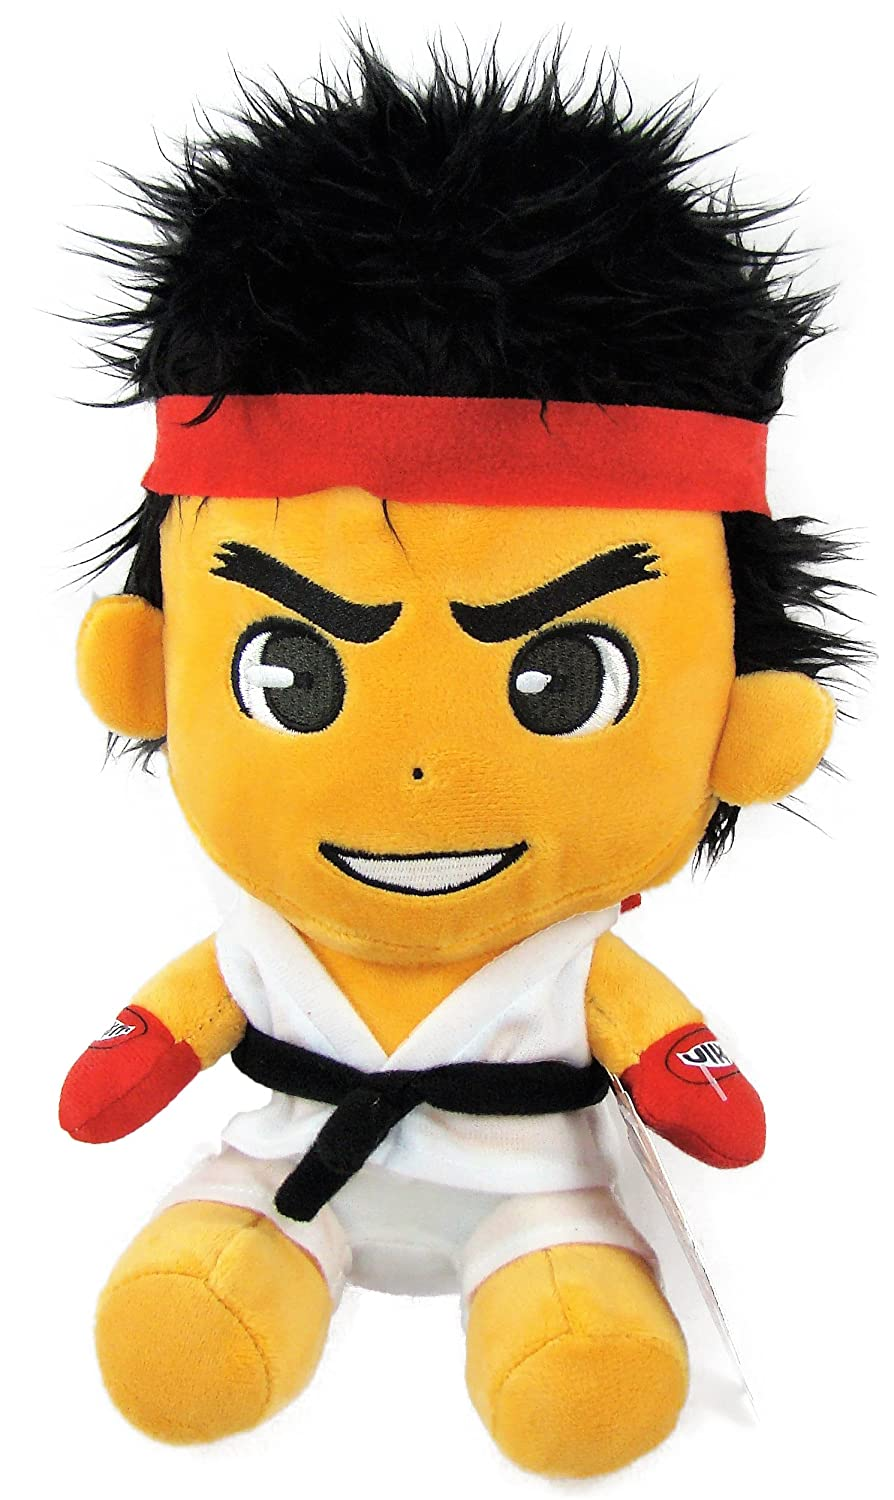 STREET FIGTHER - Peluche Ryu street figther 27 cm - Calidad Super Soft: Amazon.es: Juguetes y juegos